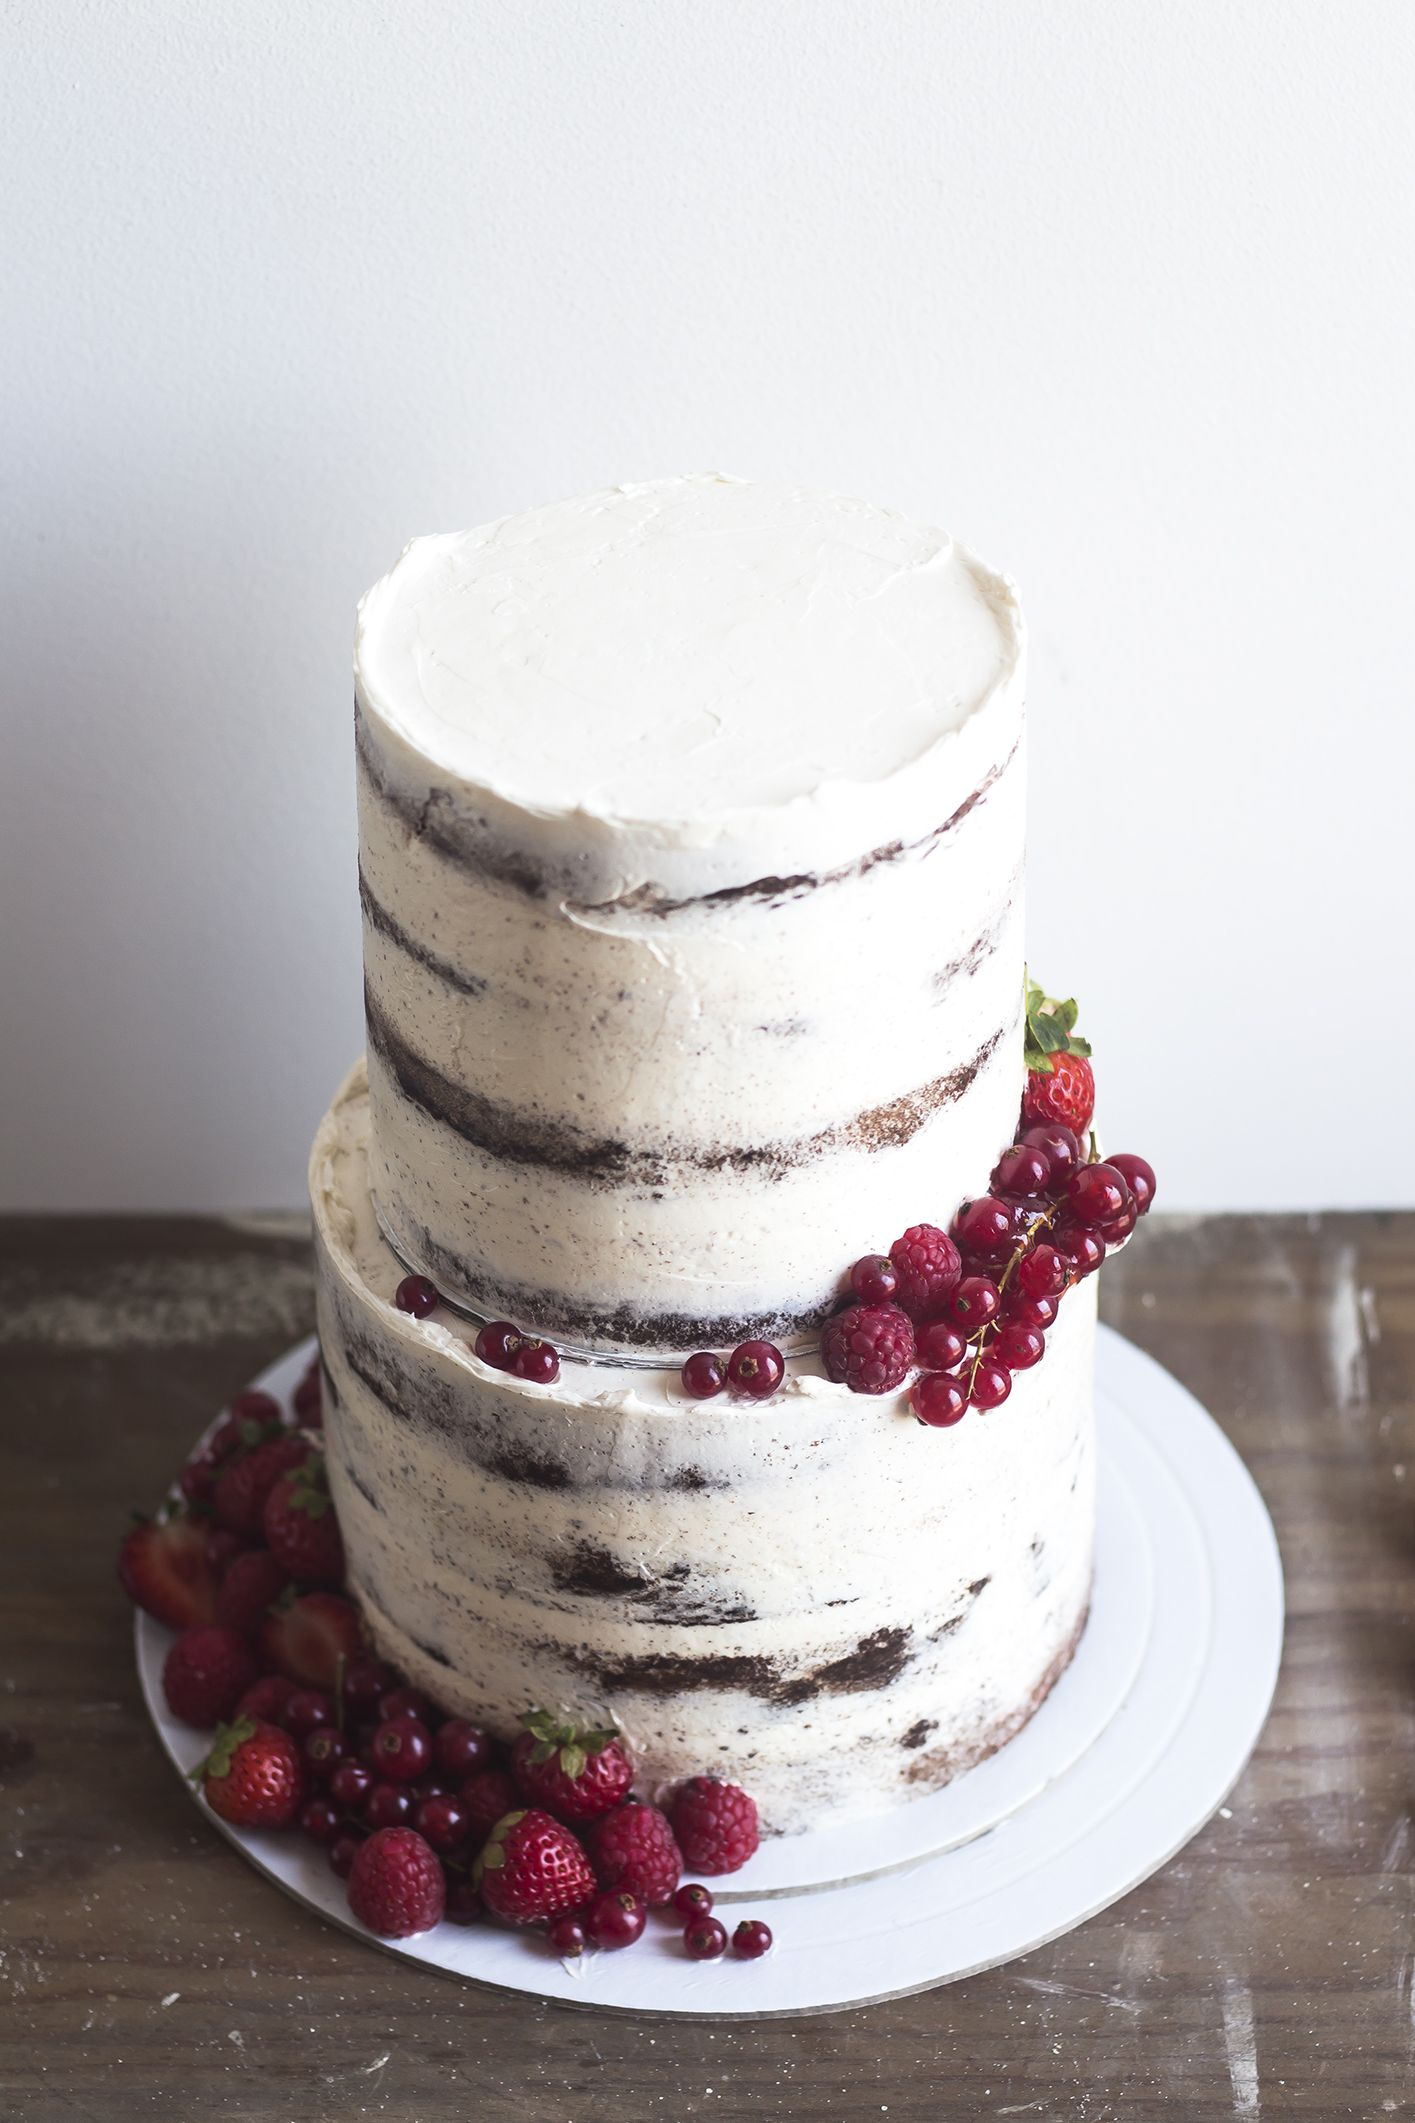 Naked Cake with Sugared Berries - bell alimento